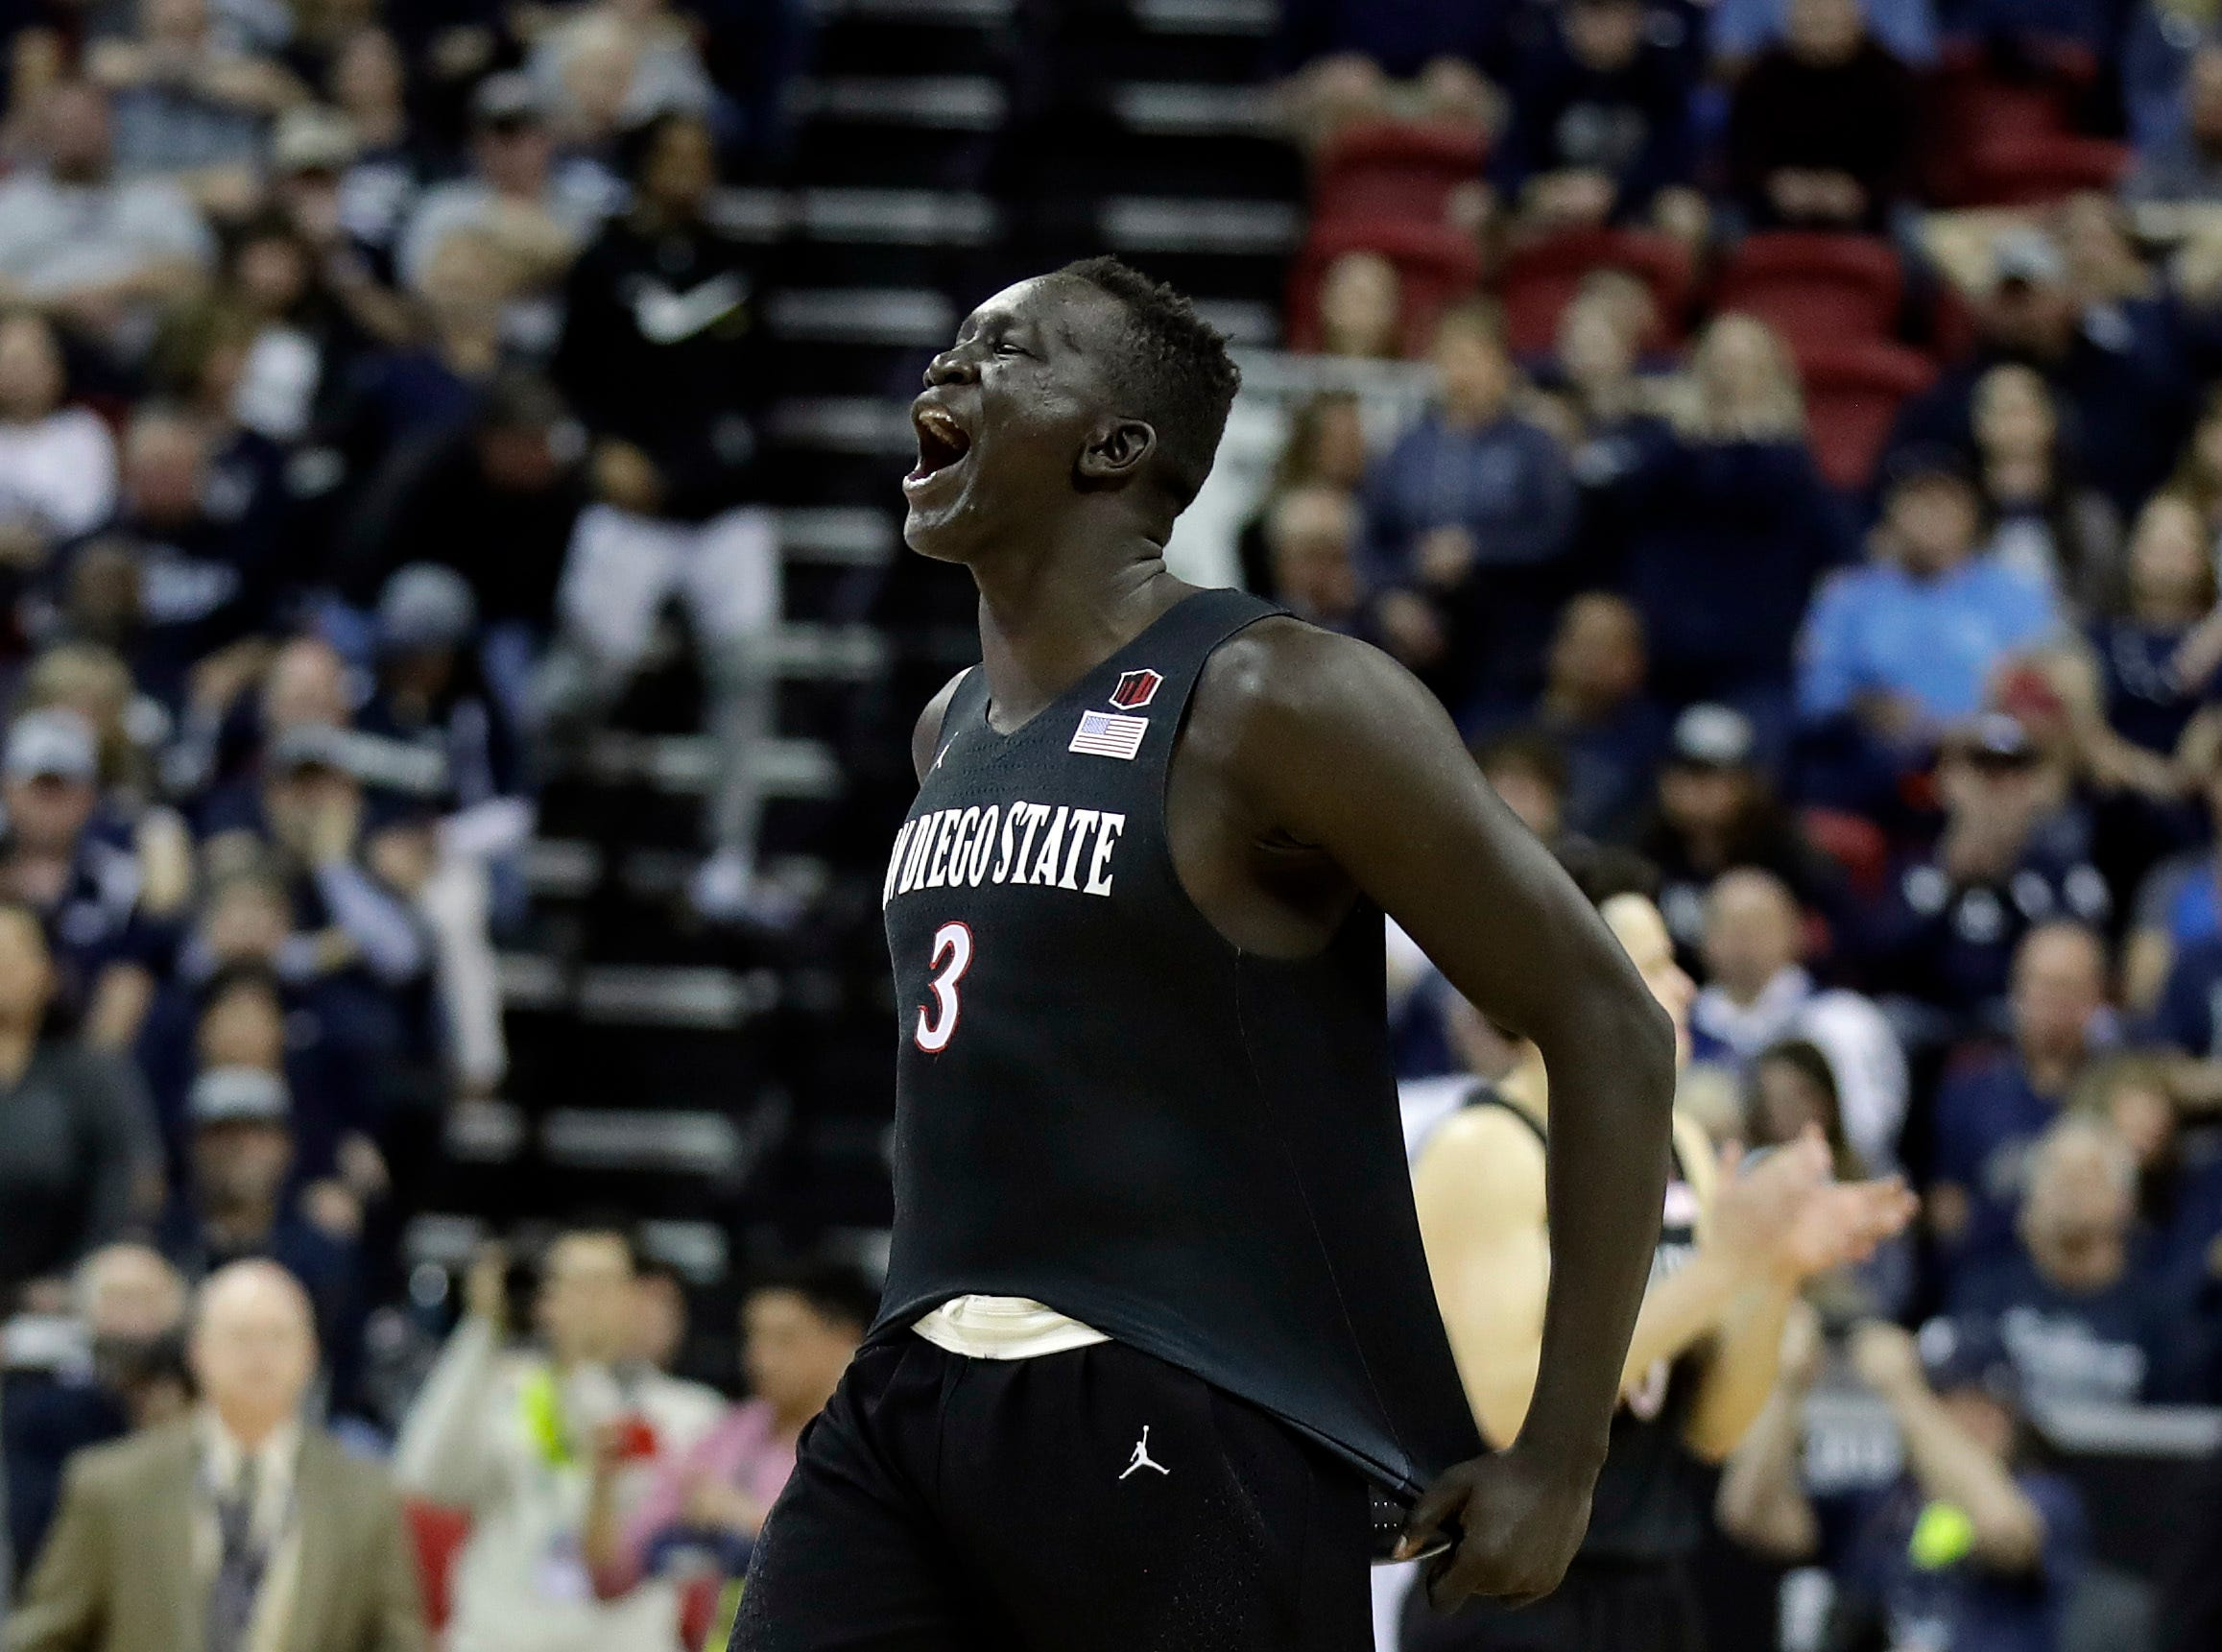 San Diego State's Aguek Arop reacts at the final buzzer of the team's NCAA college basketball game against Nevada in the Mountain West Conference men's tournament Friday, March 15, 2019, in Las Vegas. (AP Photo/Isaac Brekken)